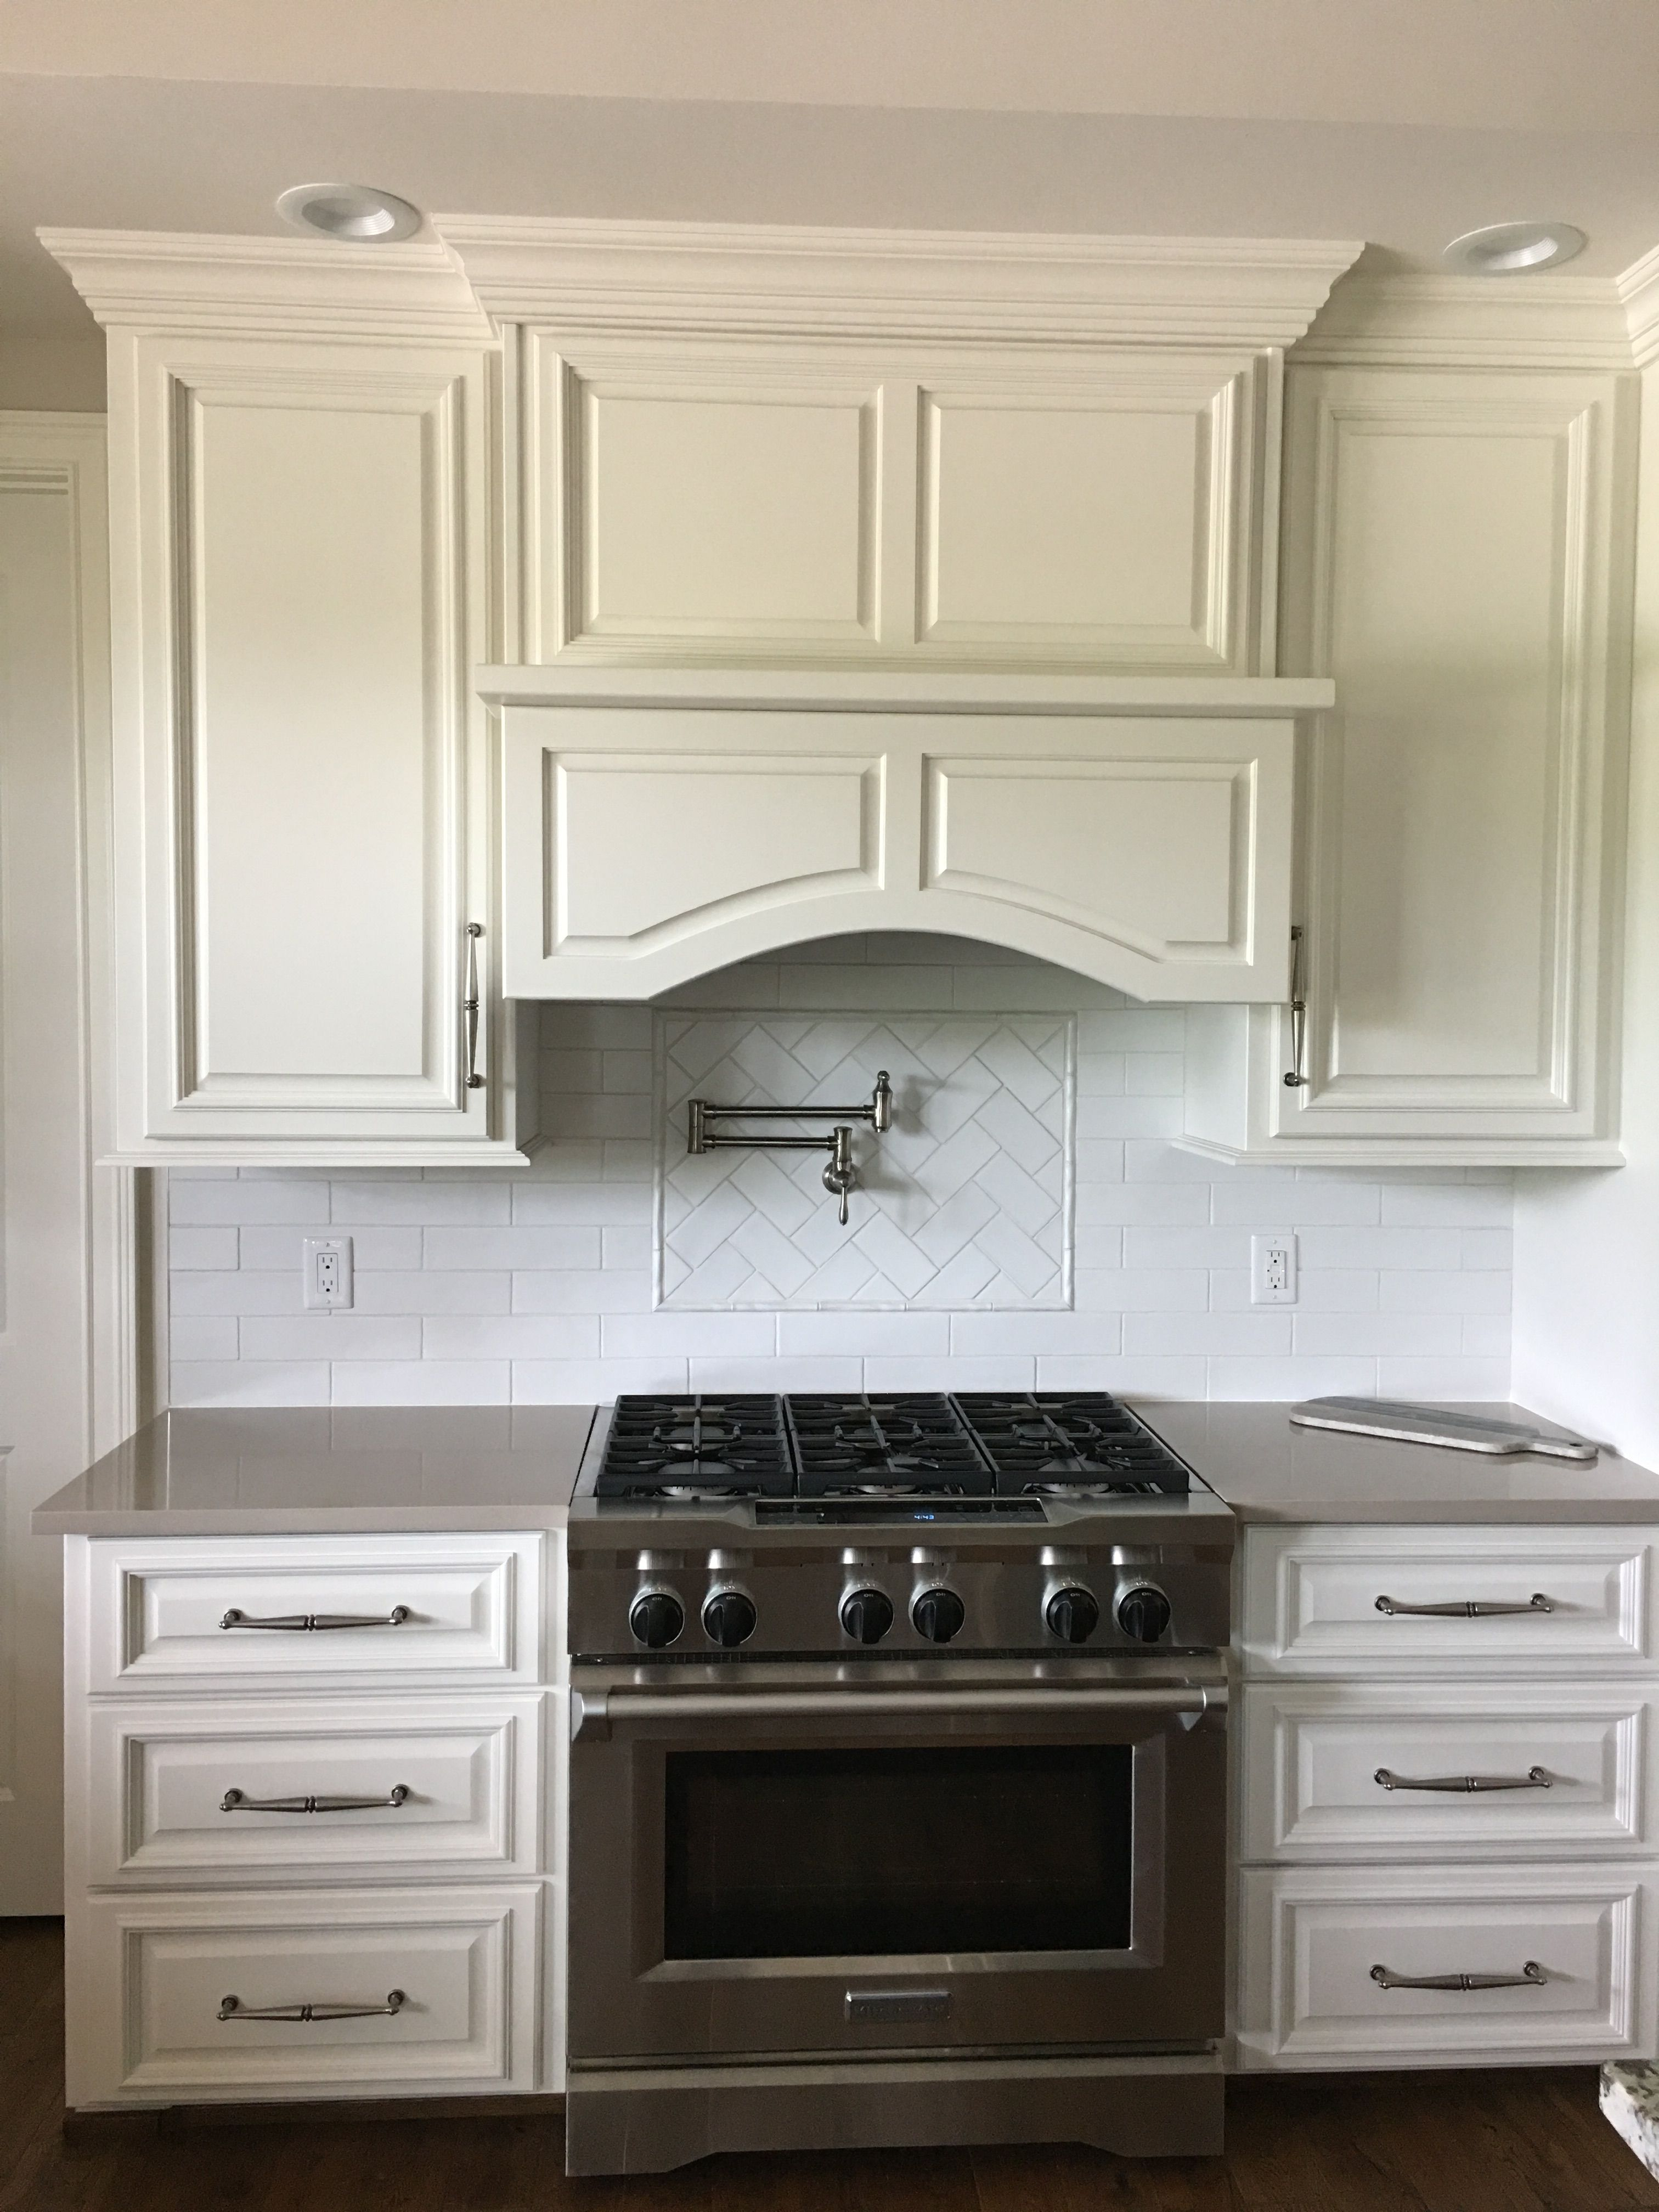 Accessible Beige SW 7036 with white subway tile backsplash